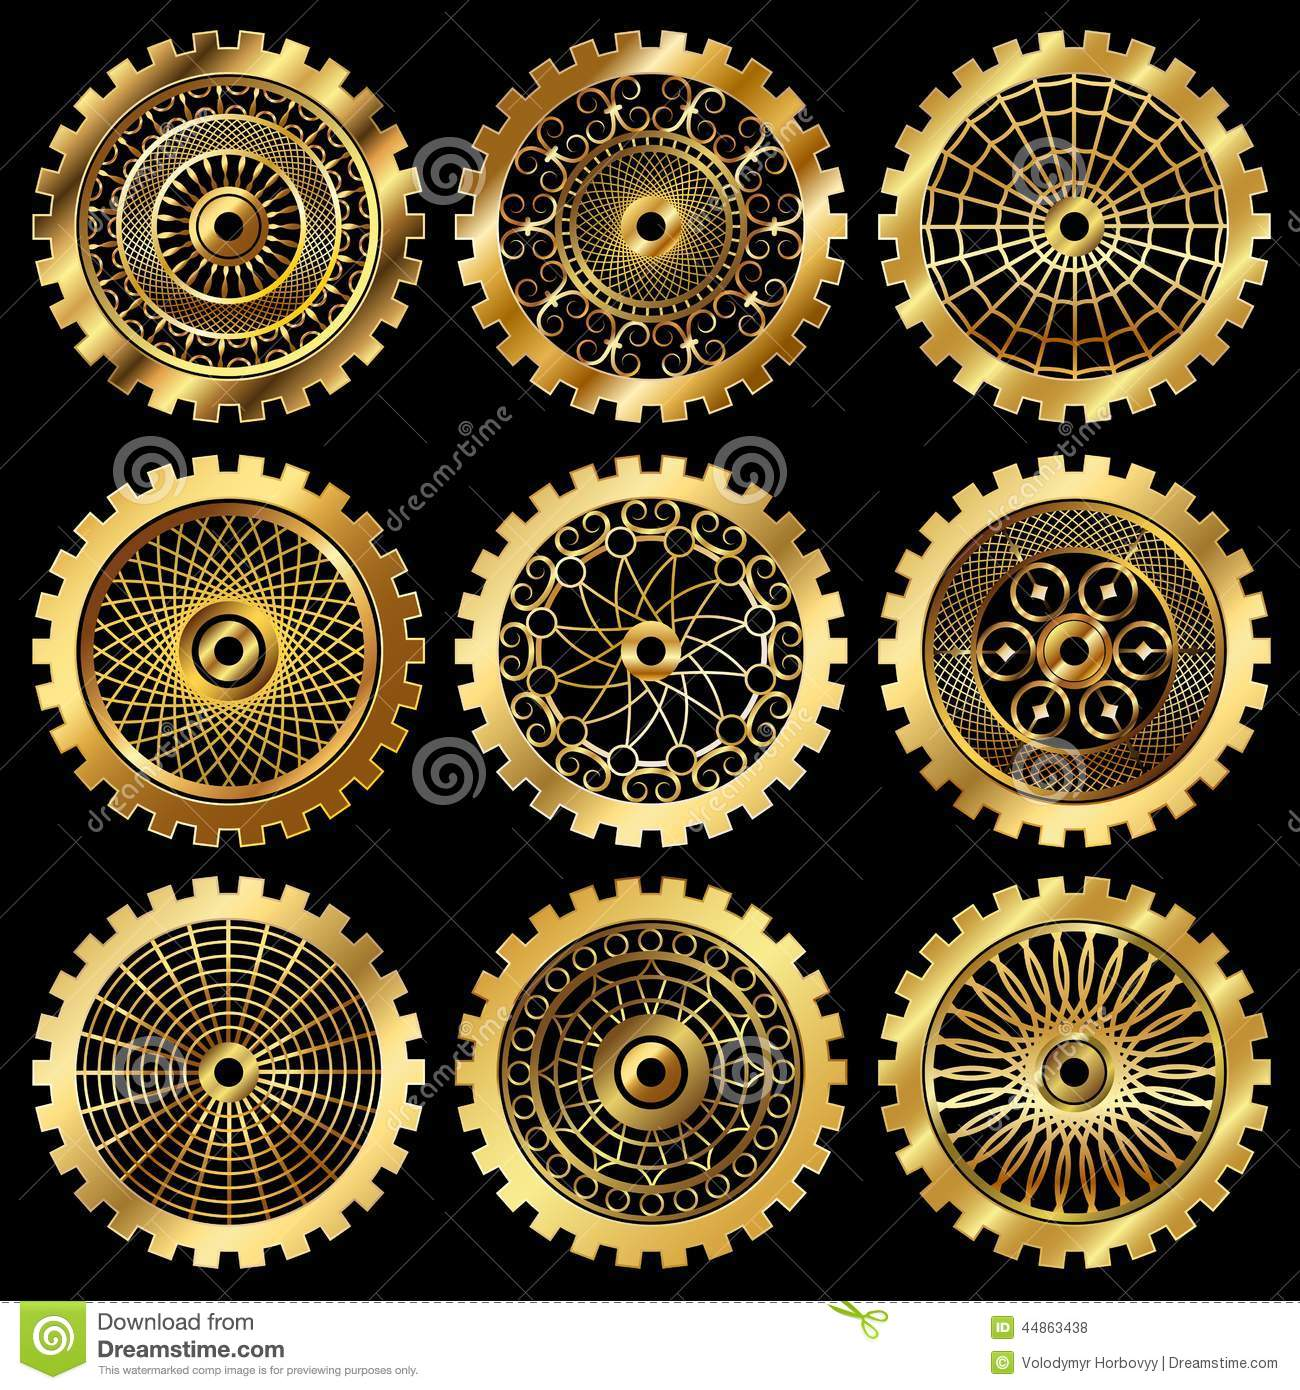 The Gears Stock Vector - Image: 44863438